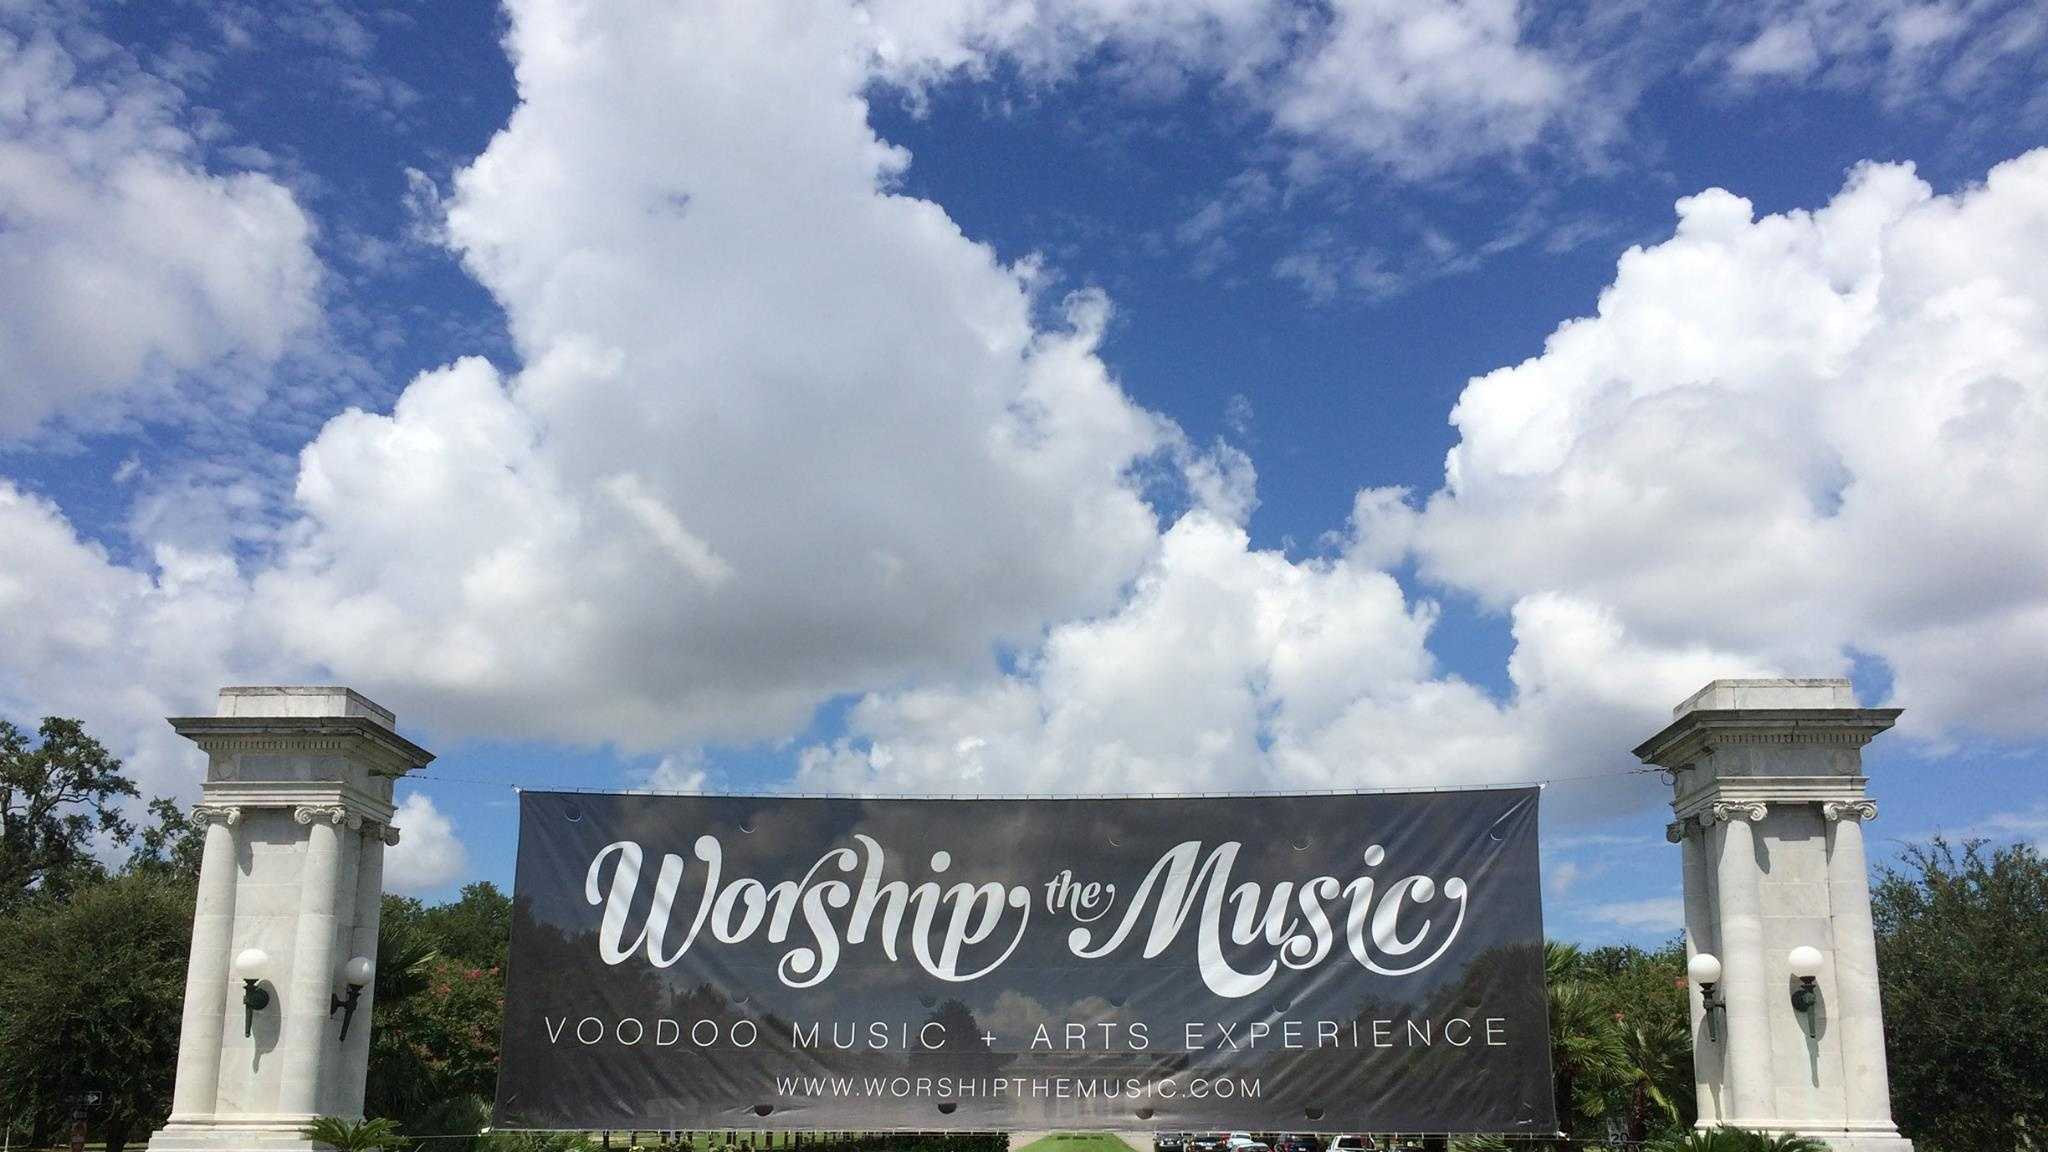 Voodoo Music and Arts Experience 2014 kicks off this weekend. Four stages will be located throughout the festival. Here is the lineup divided by days.